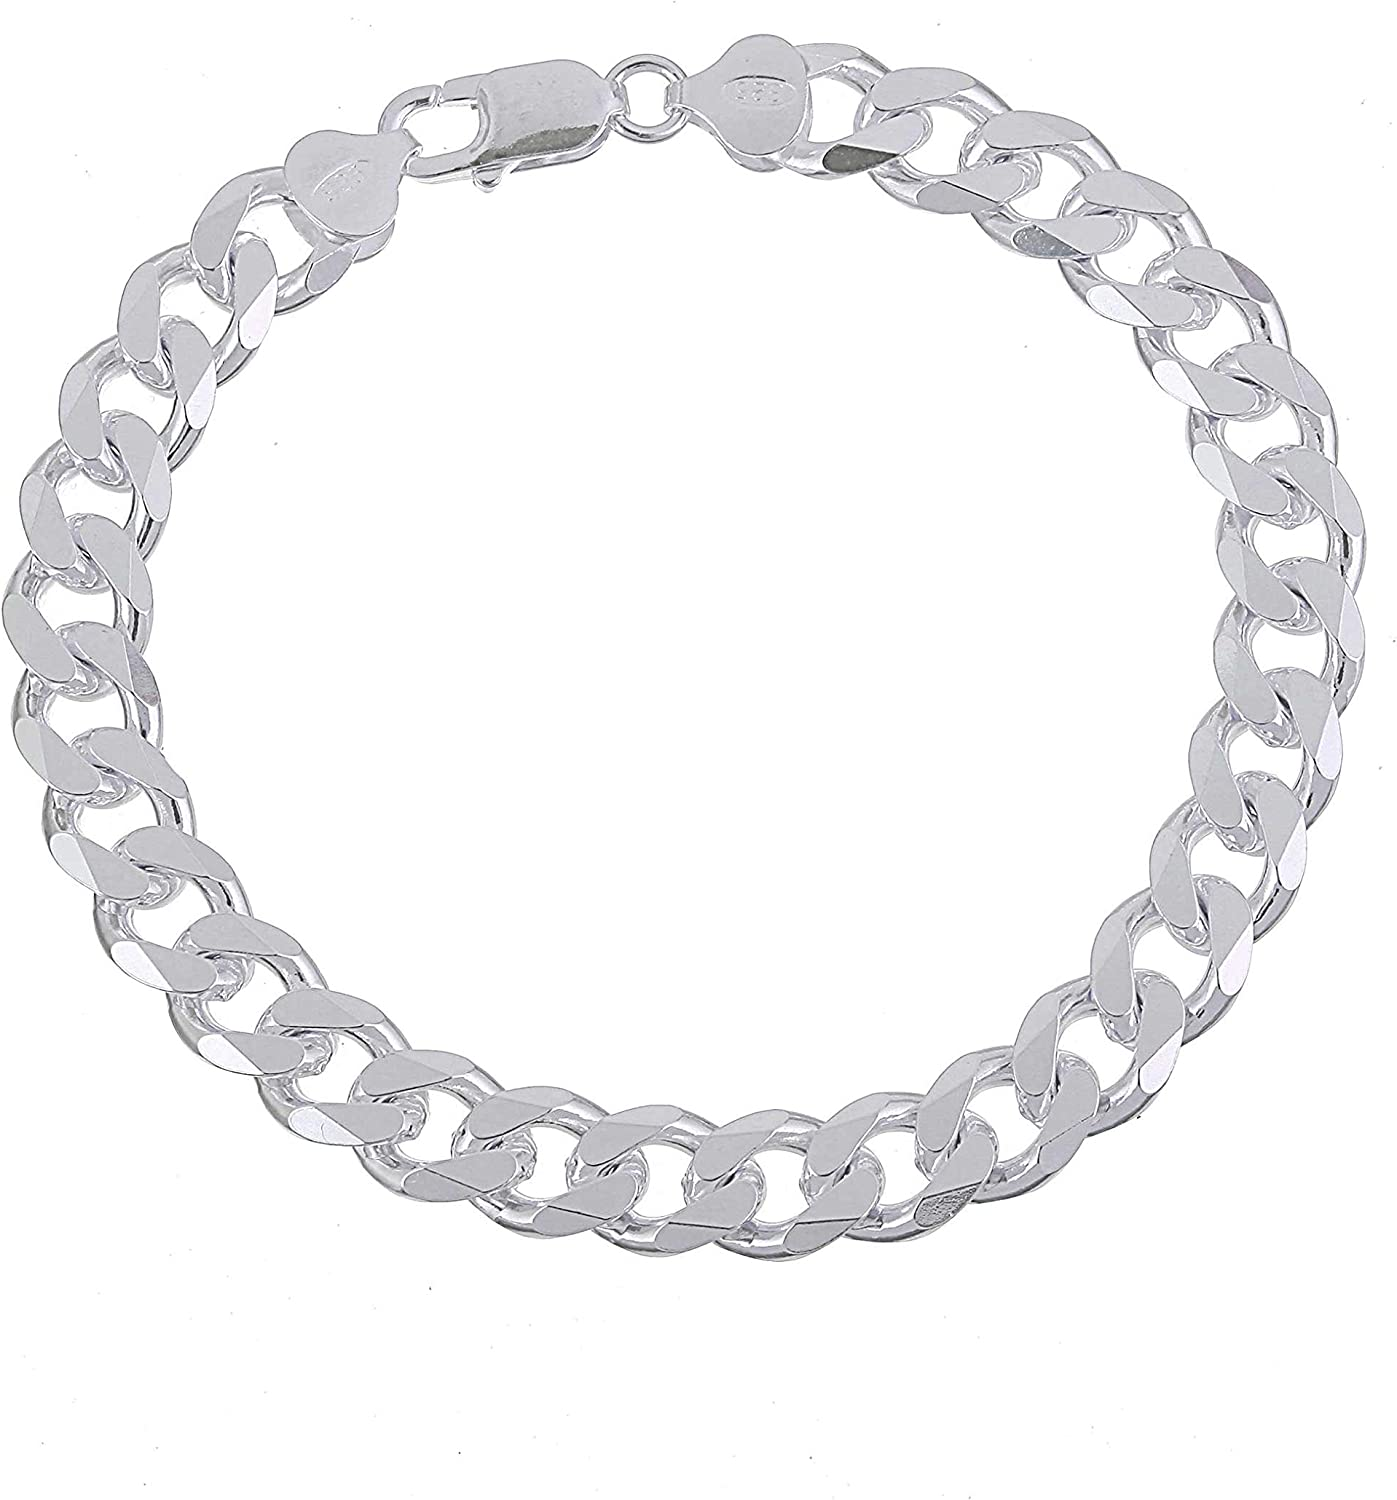 Sterling Inexpensive Silver Heavy 10mm Mens Max 86% OFF Curb Chain Necklace or Brac Link